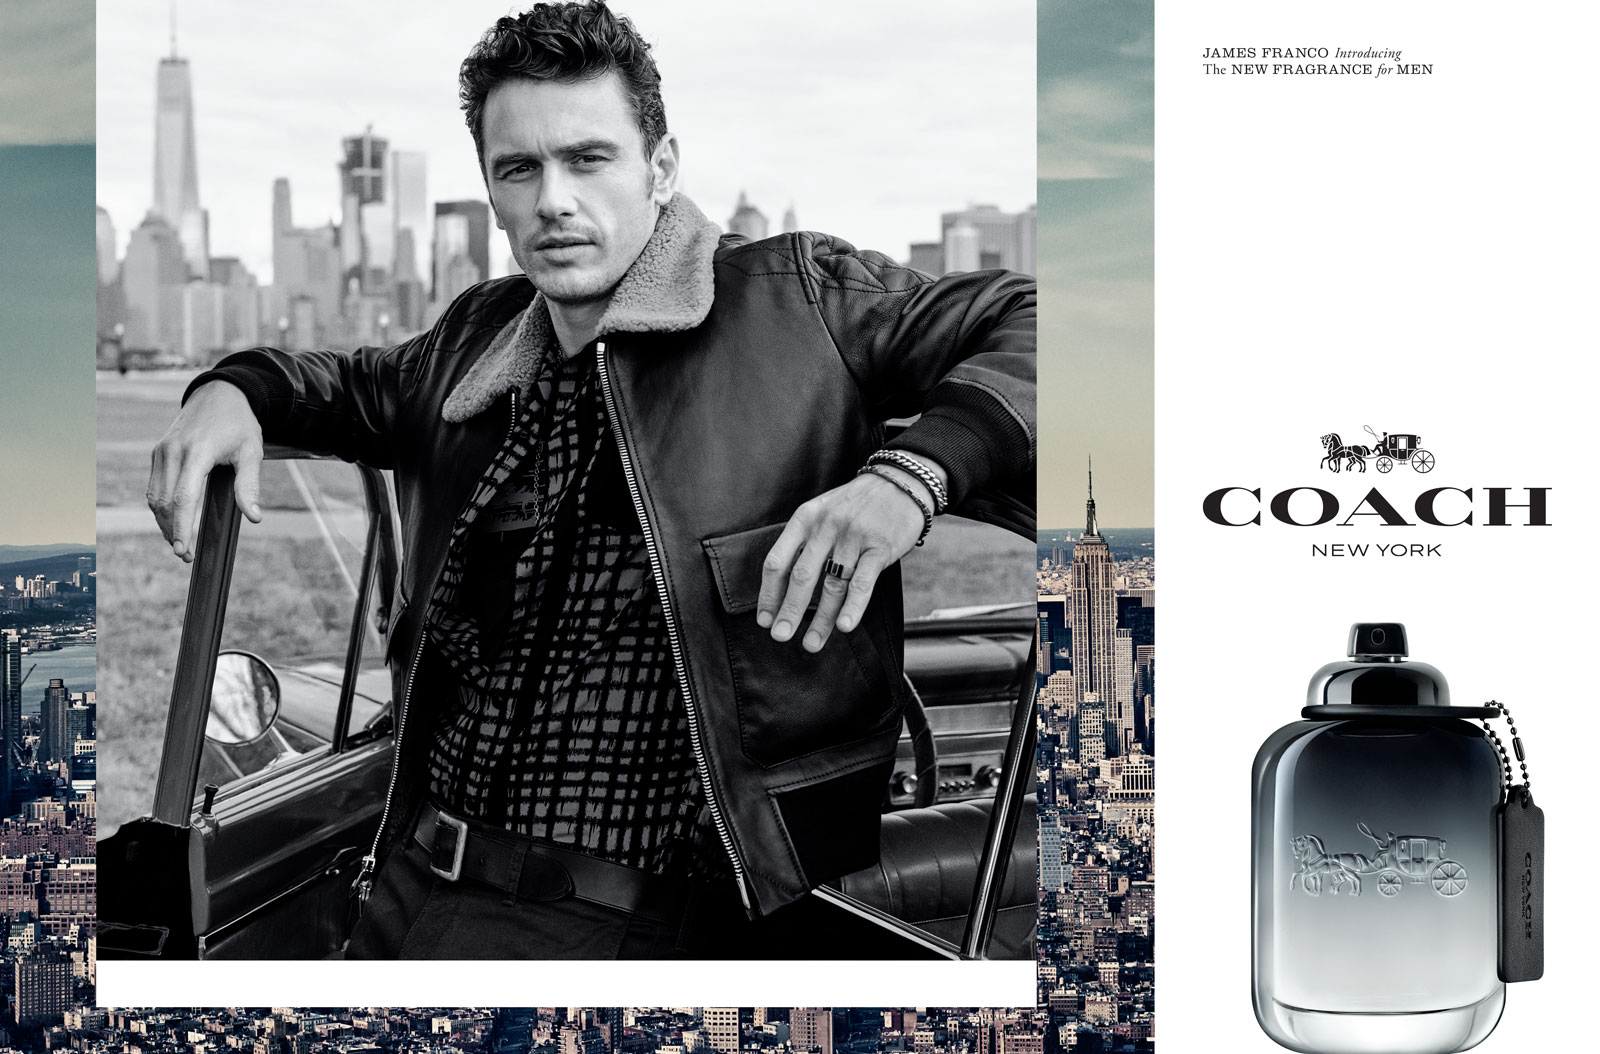 Coach for men eau de toilette takes you on a journey of endless possibilities evoking